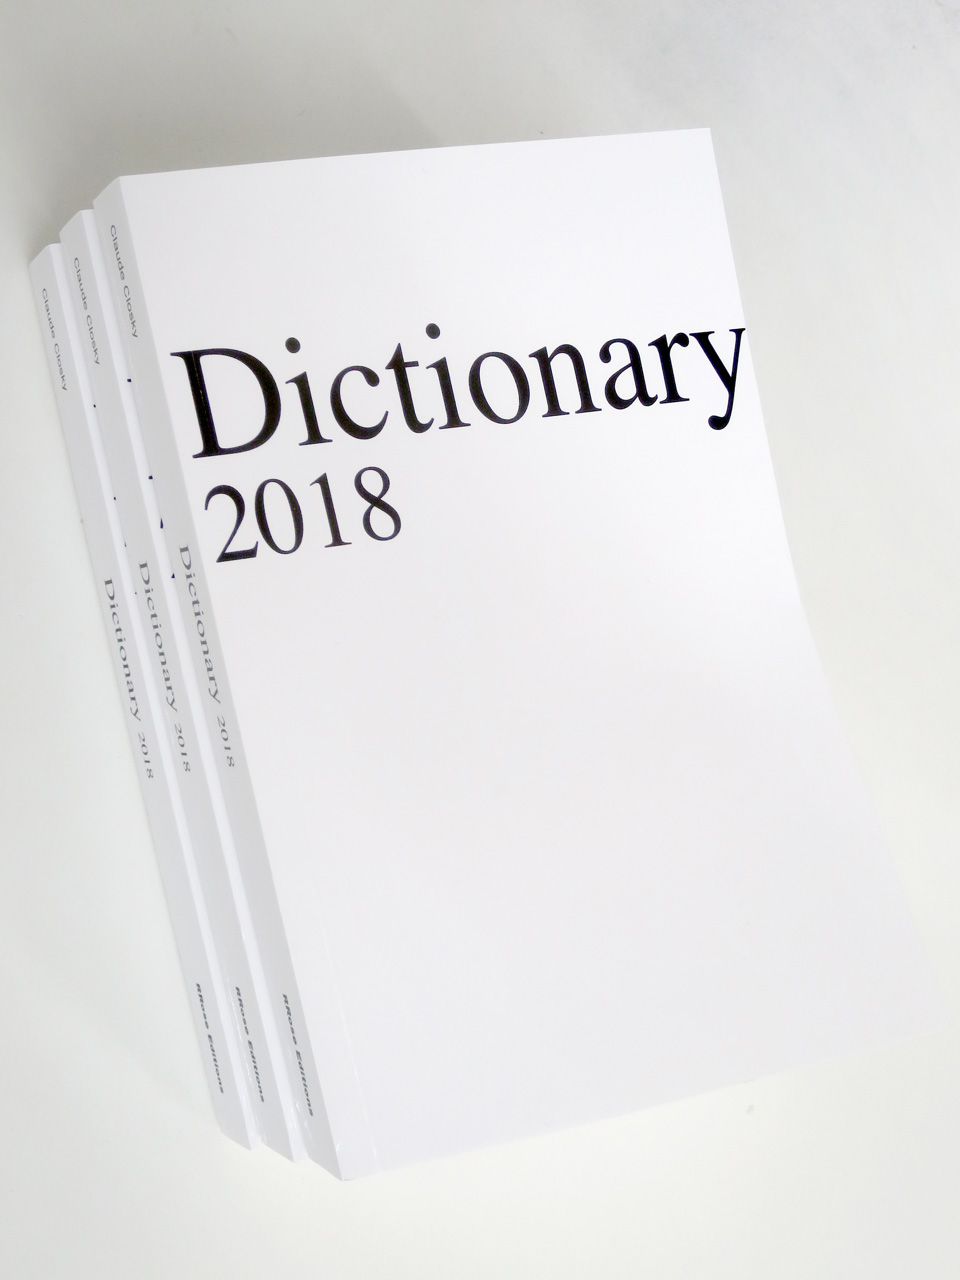 Dictionnary 2018